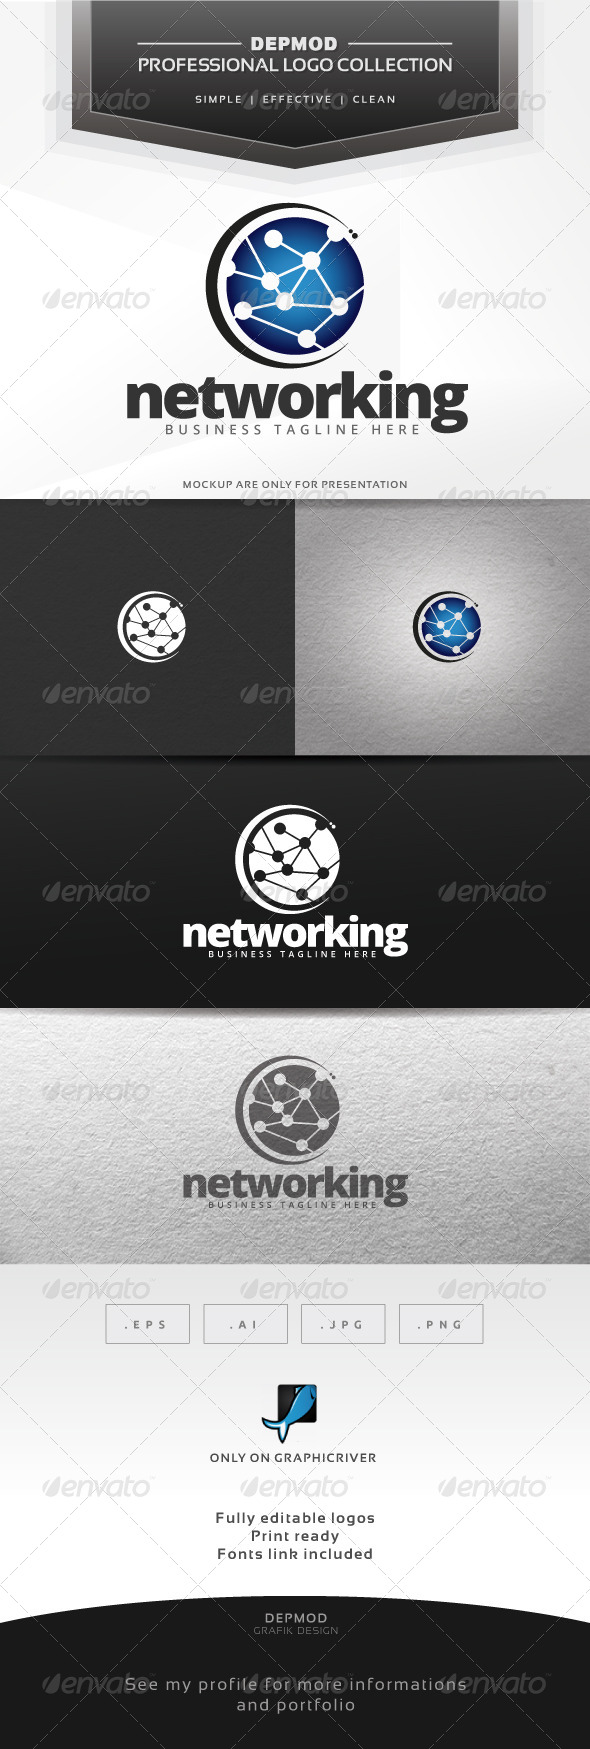 Networking Logo - Abstract Logo Templates